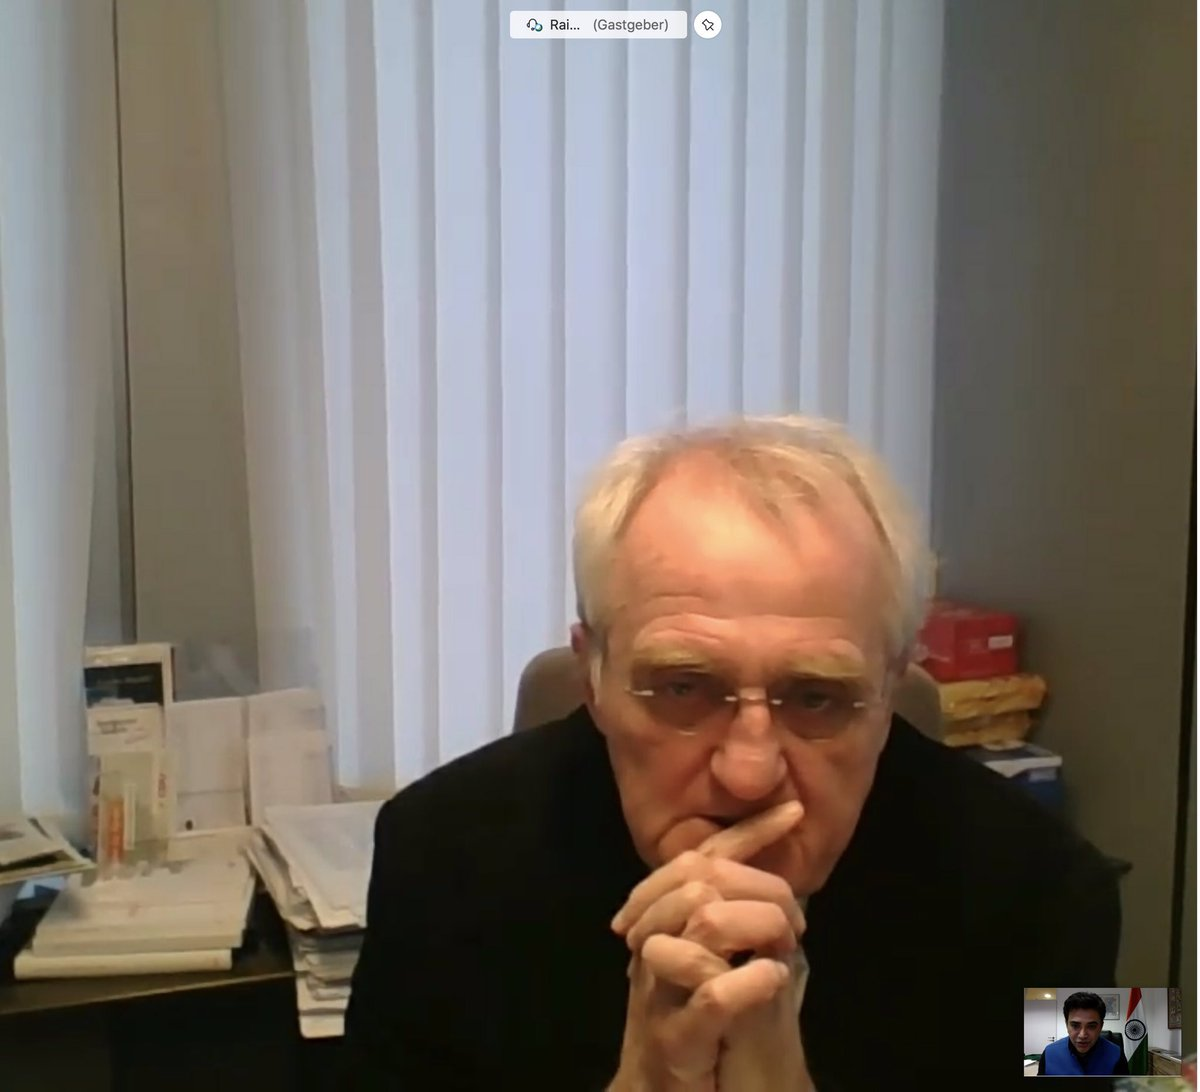 Honor to meet via video conference Hon'ble Vice President of @Europarl_EN H.E. Rainer Wieland on 03.12.2020 & discuss #IndiaGermany trade and investment relationship, threat of expansionism and isolating countries that use terrorism as state policy.